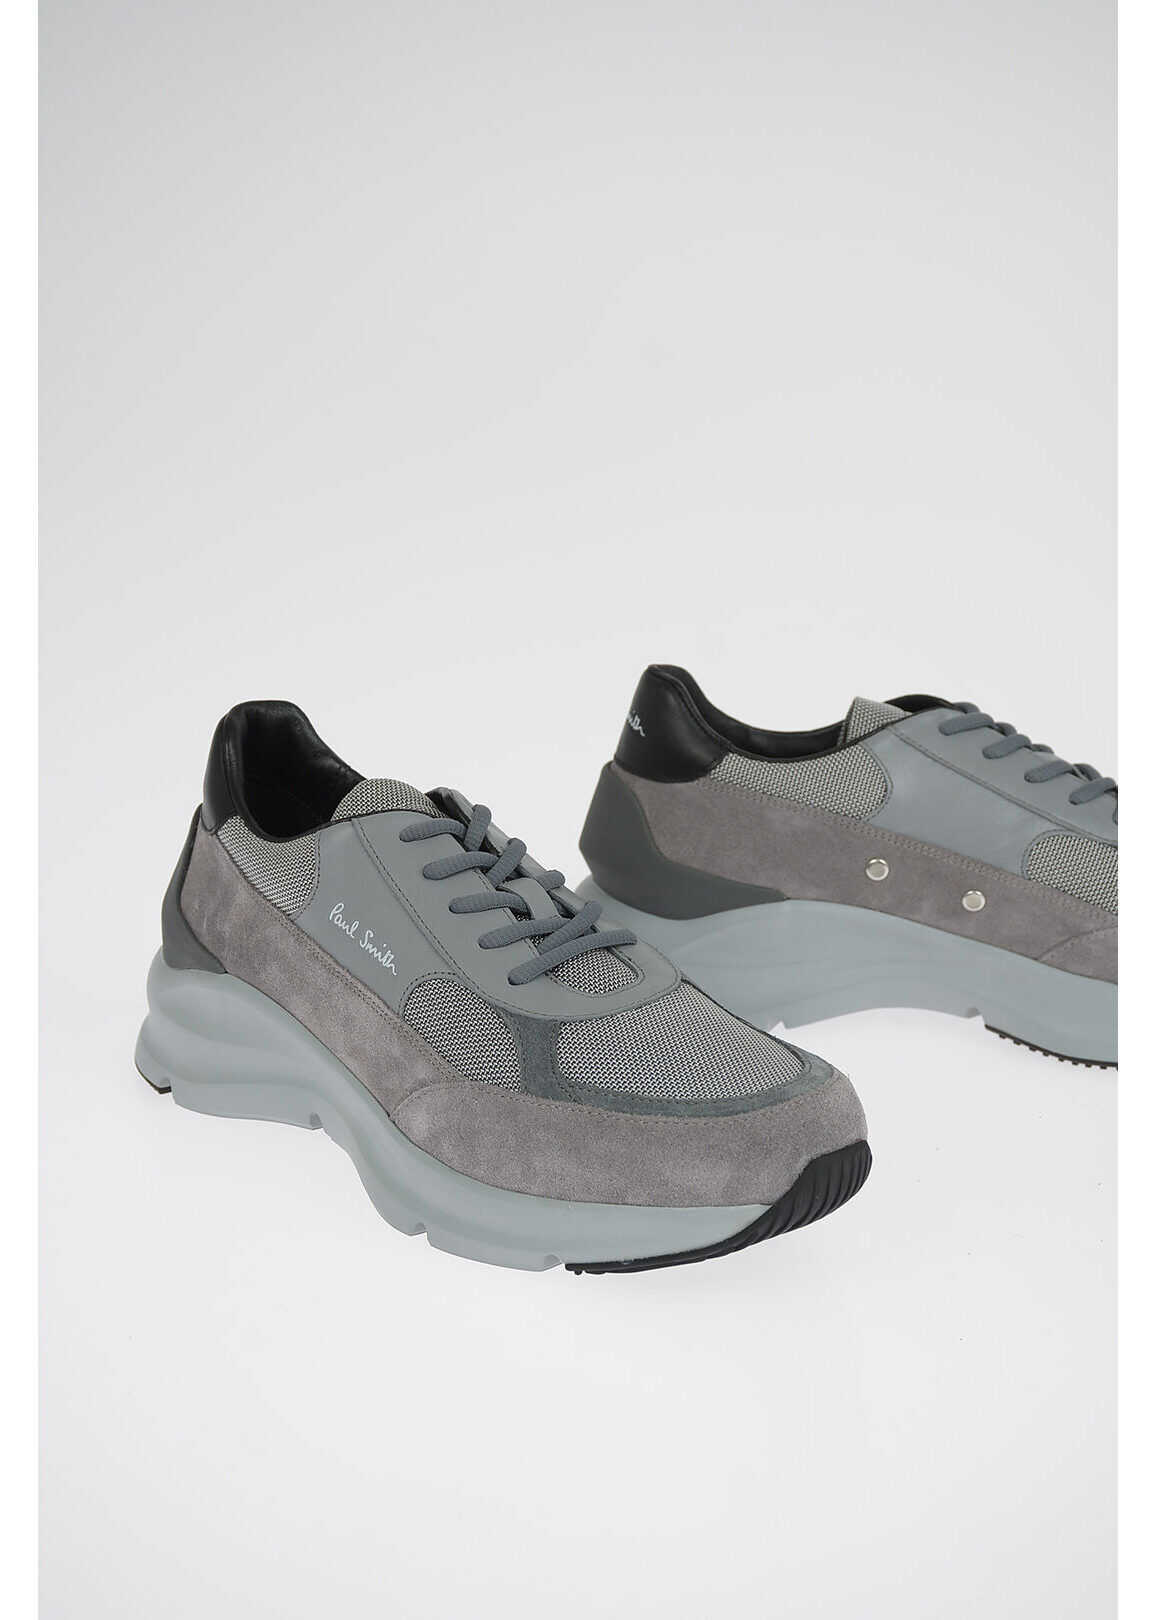 Paul Smith Fabric and Suede Leather EXPLORER Sneakers GRAY